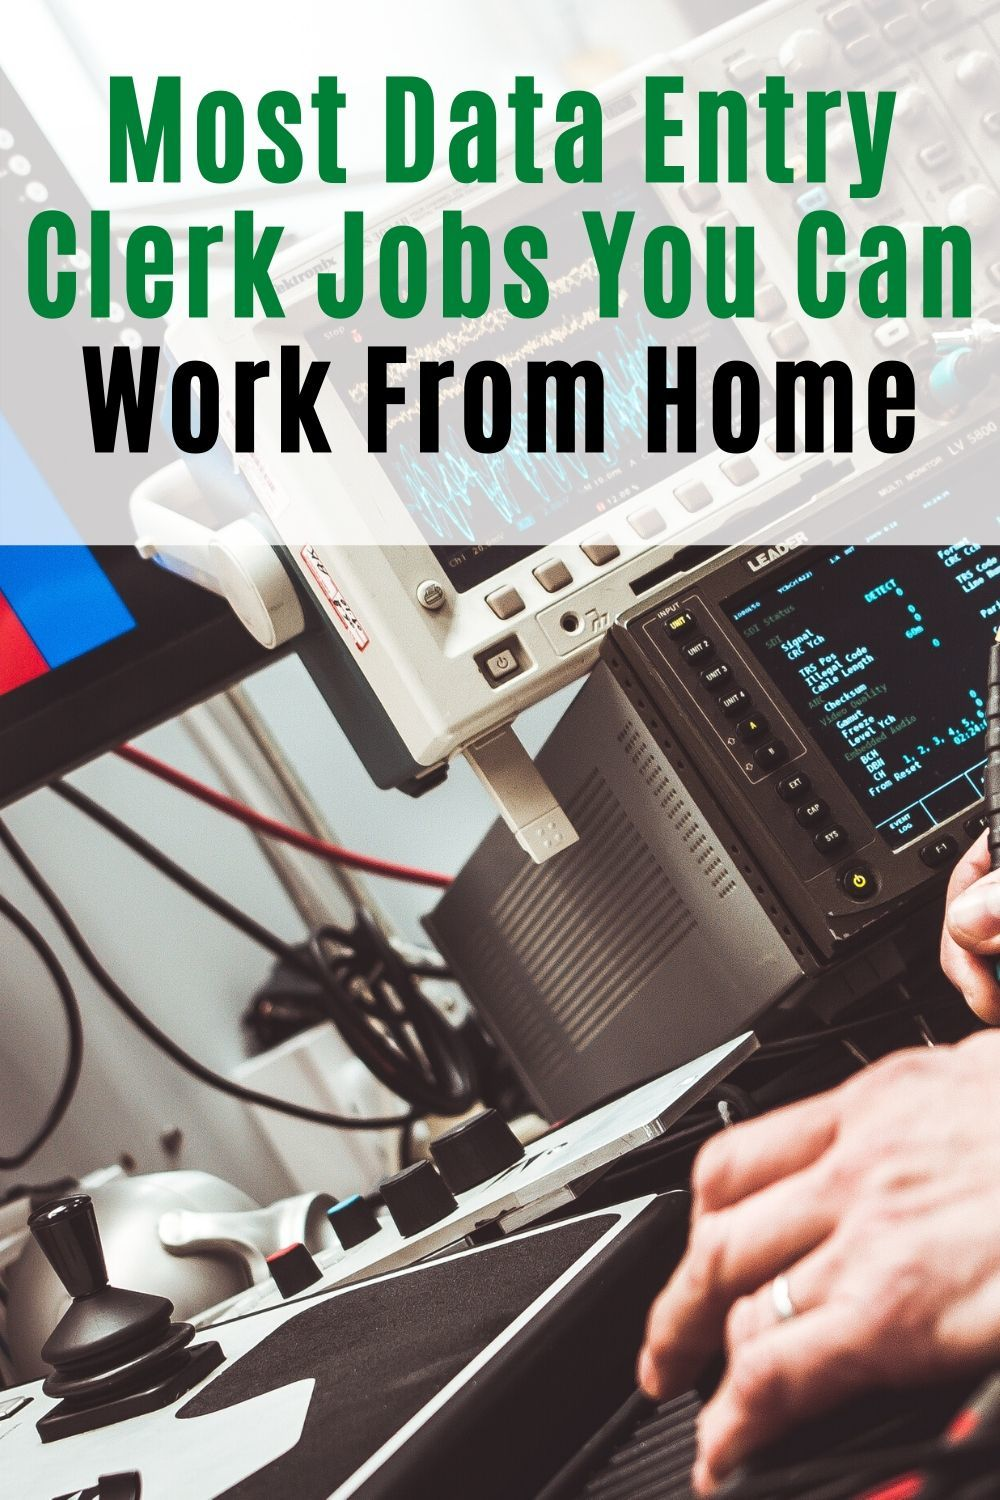 Most Data Entry Clerk Jobs You Can Work from Home